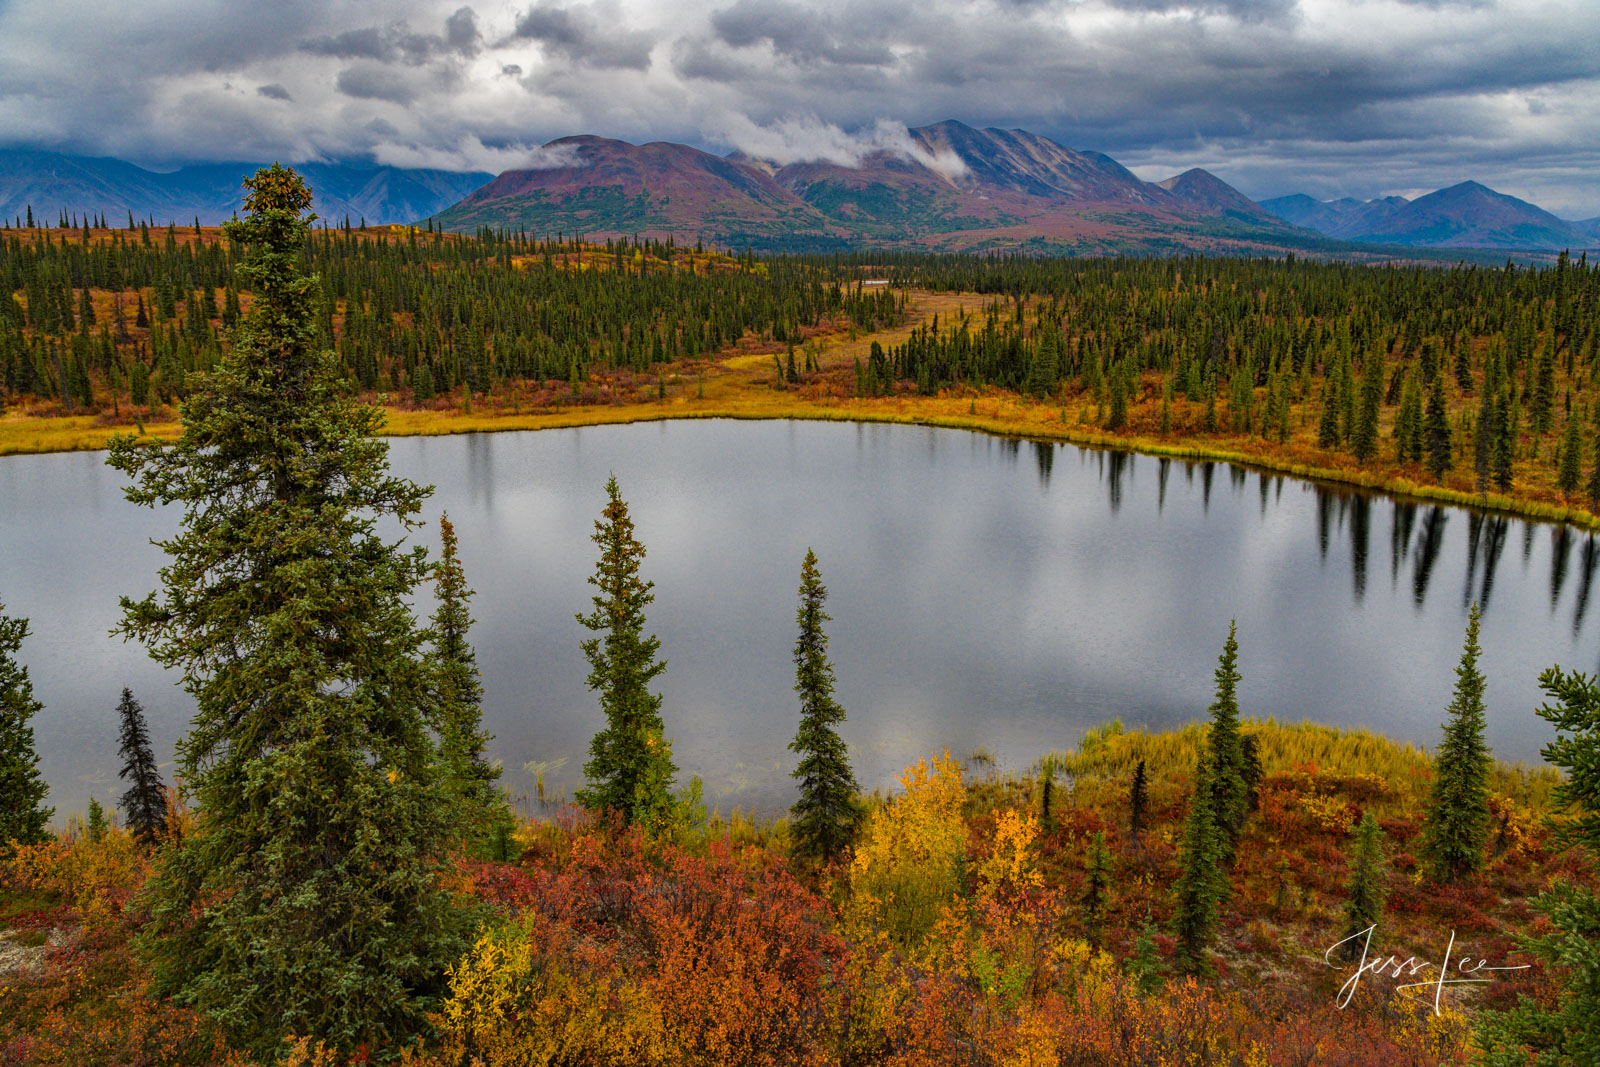 Alaskan range adjacent to Denali National Park changing colors with the onset of autumn